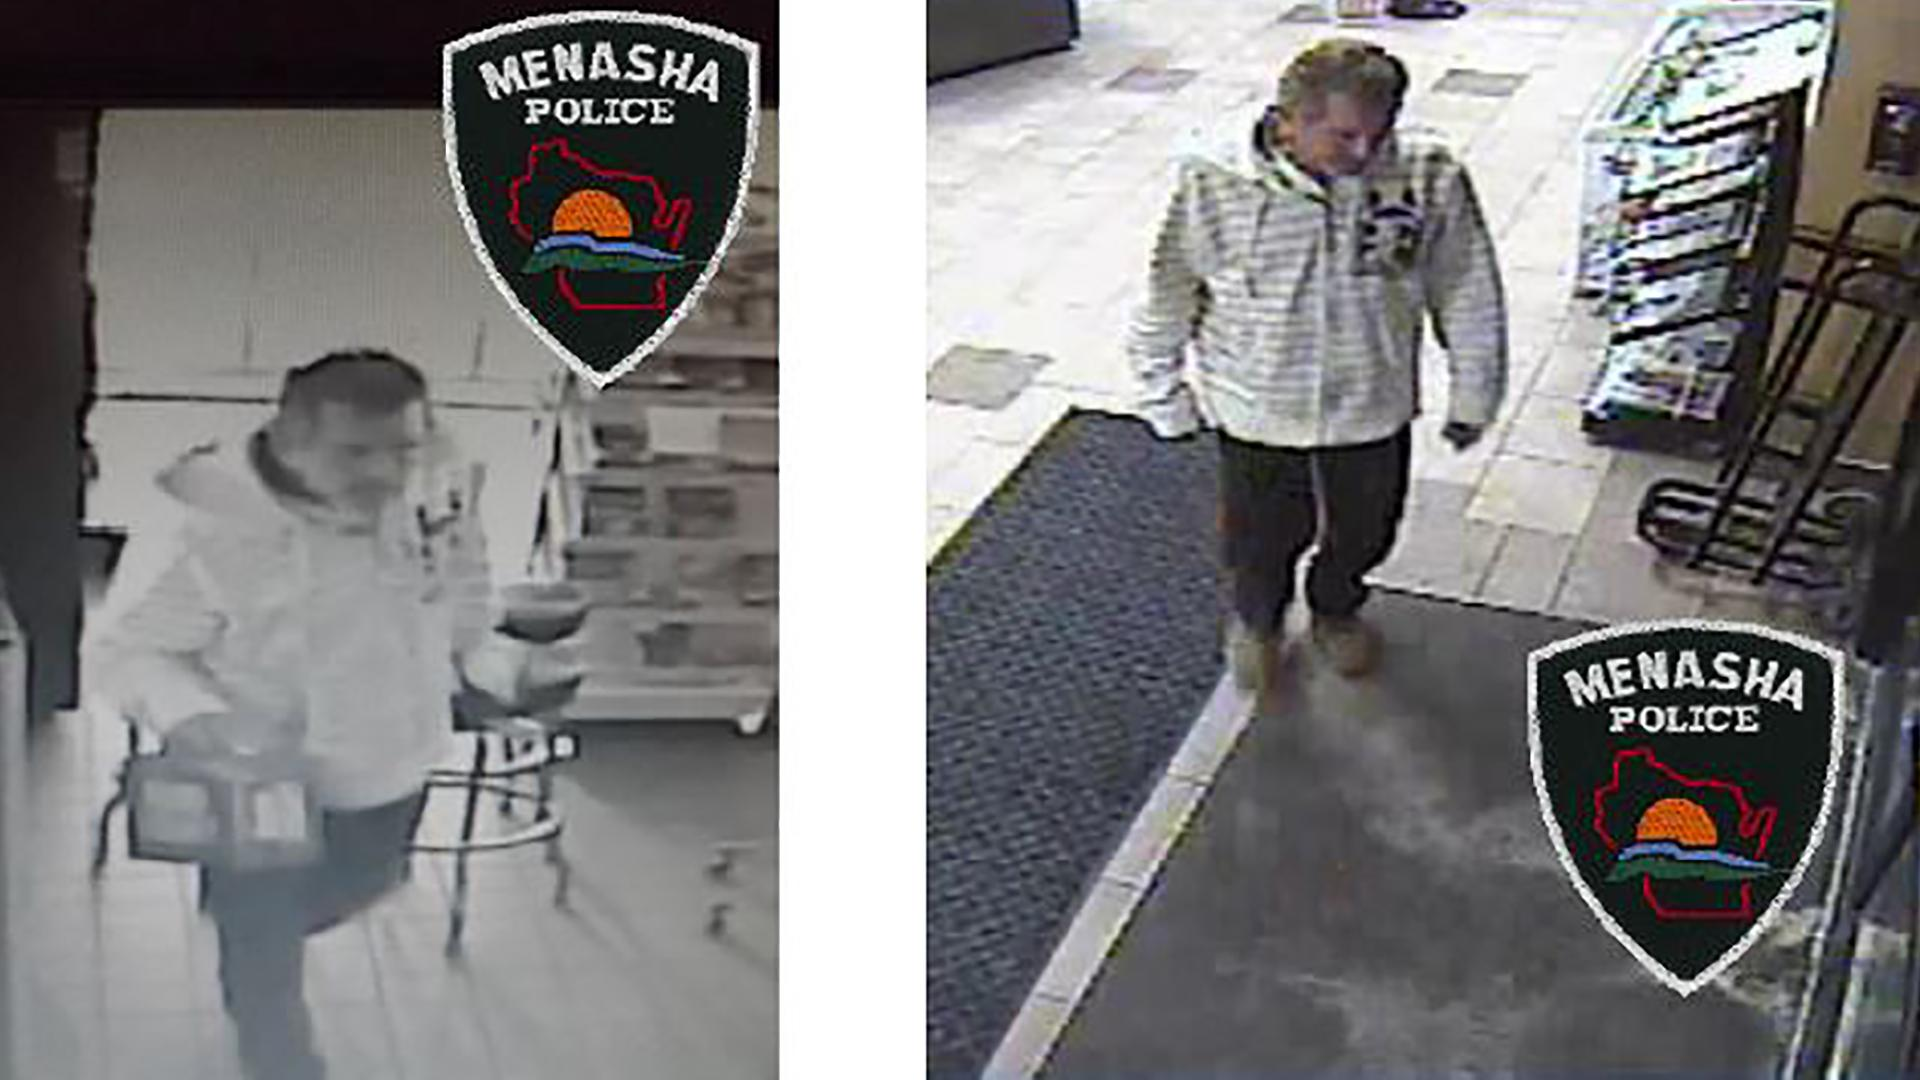 This surveillance image released by the Menasha Police Department shows a suspect who ran his car through the front door of JS Foods Jan. 28, 2018. (Image: Menasha Police Department)